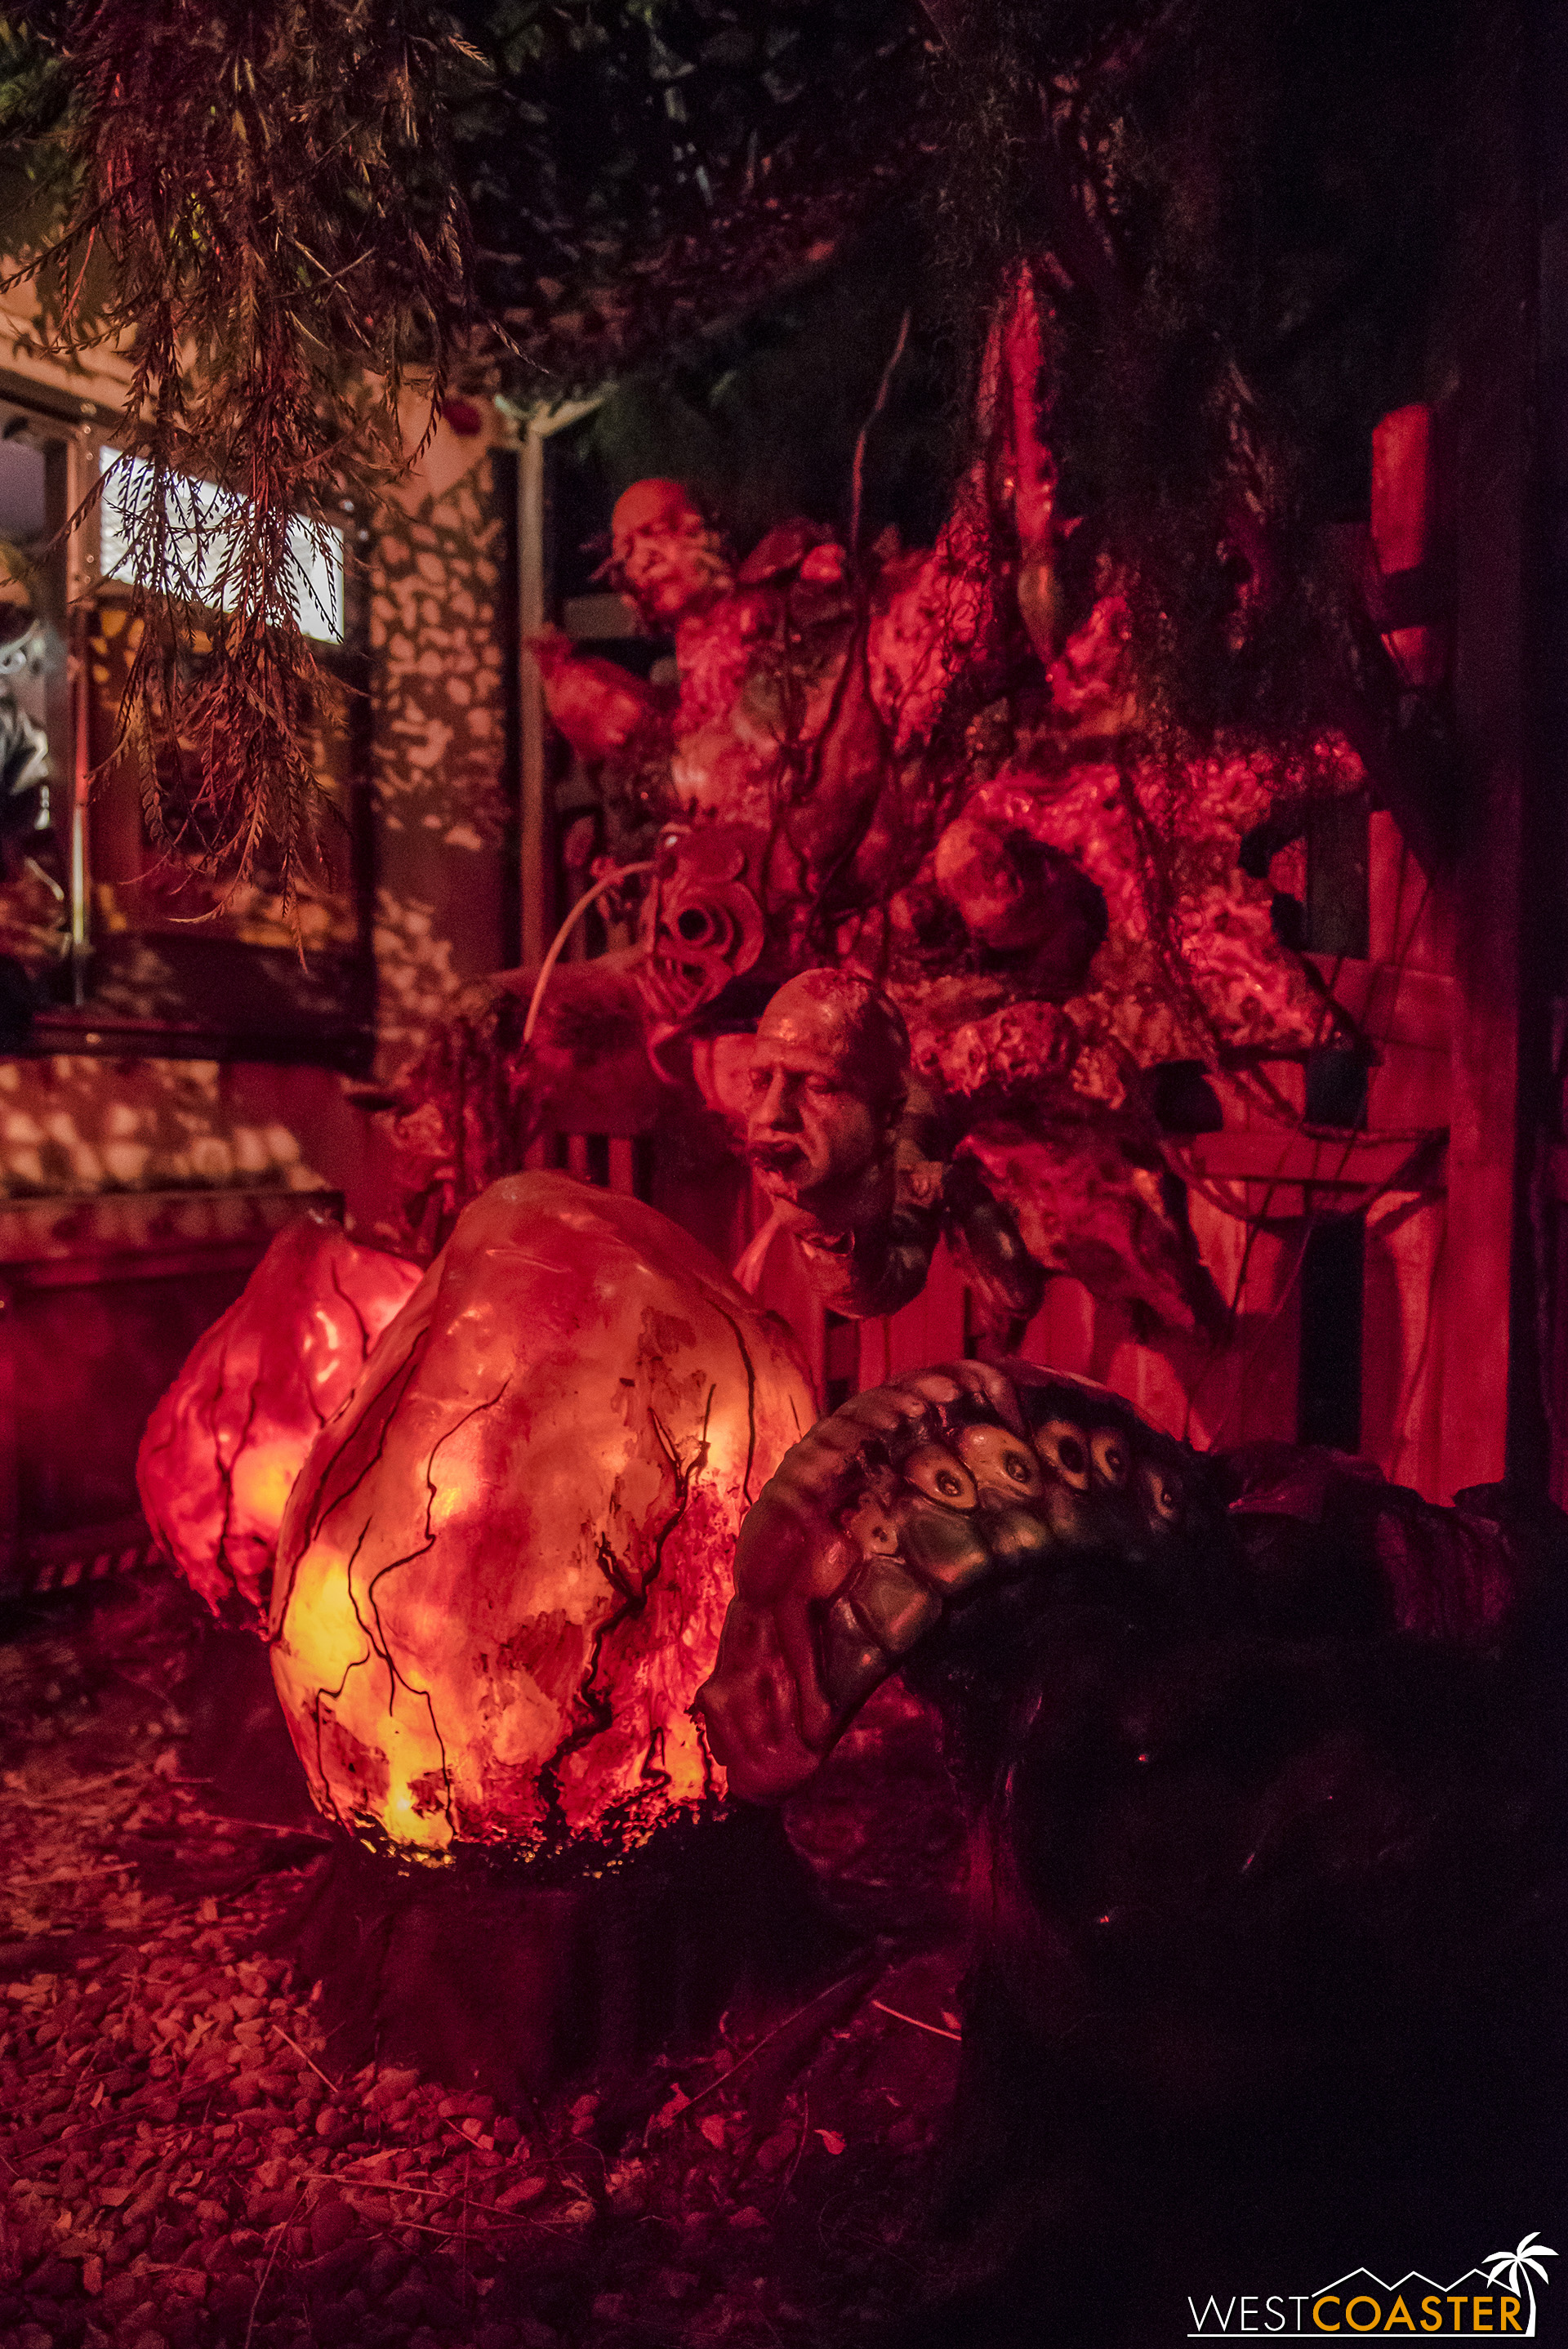 The theming is certainly incredible. Some of the best found at a haunt—amateur or pro!